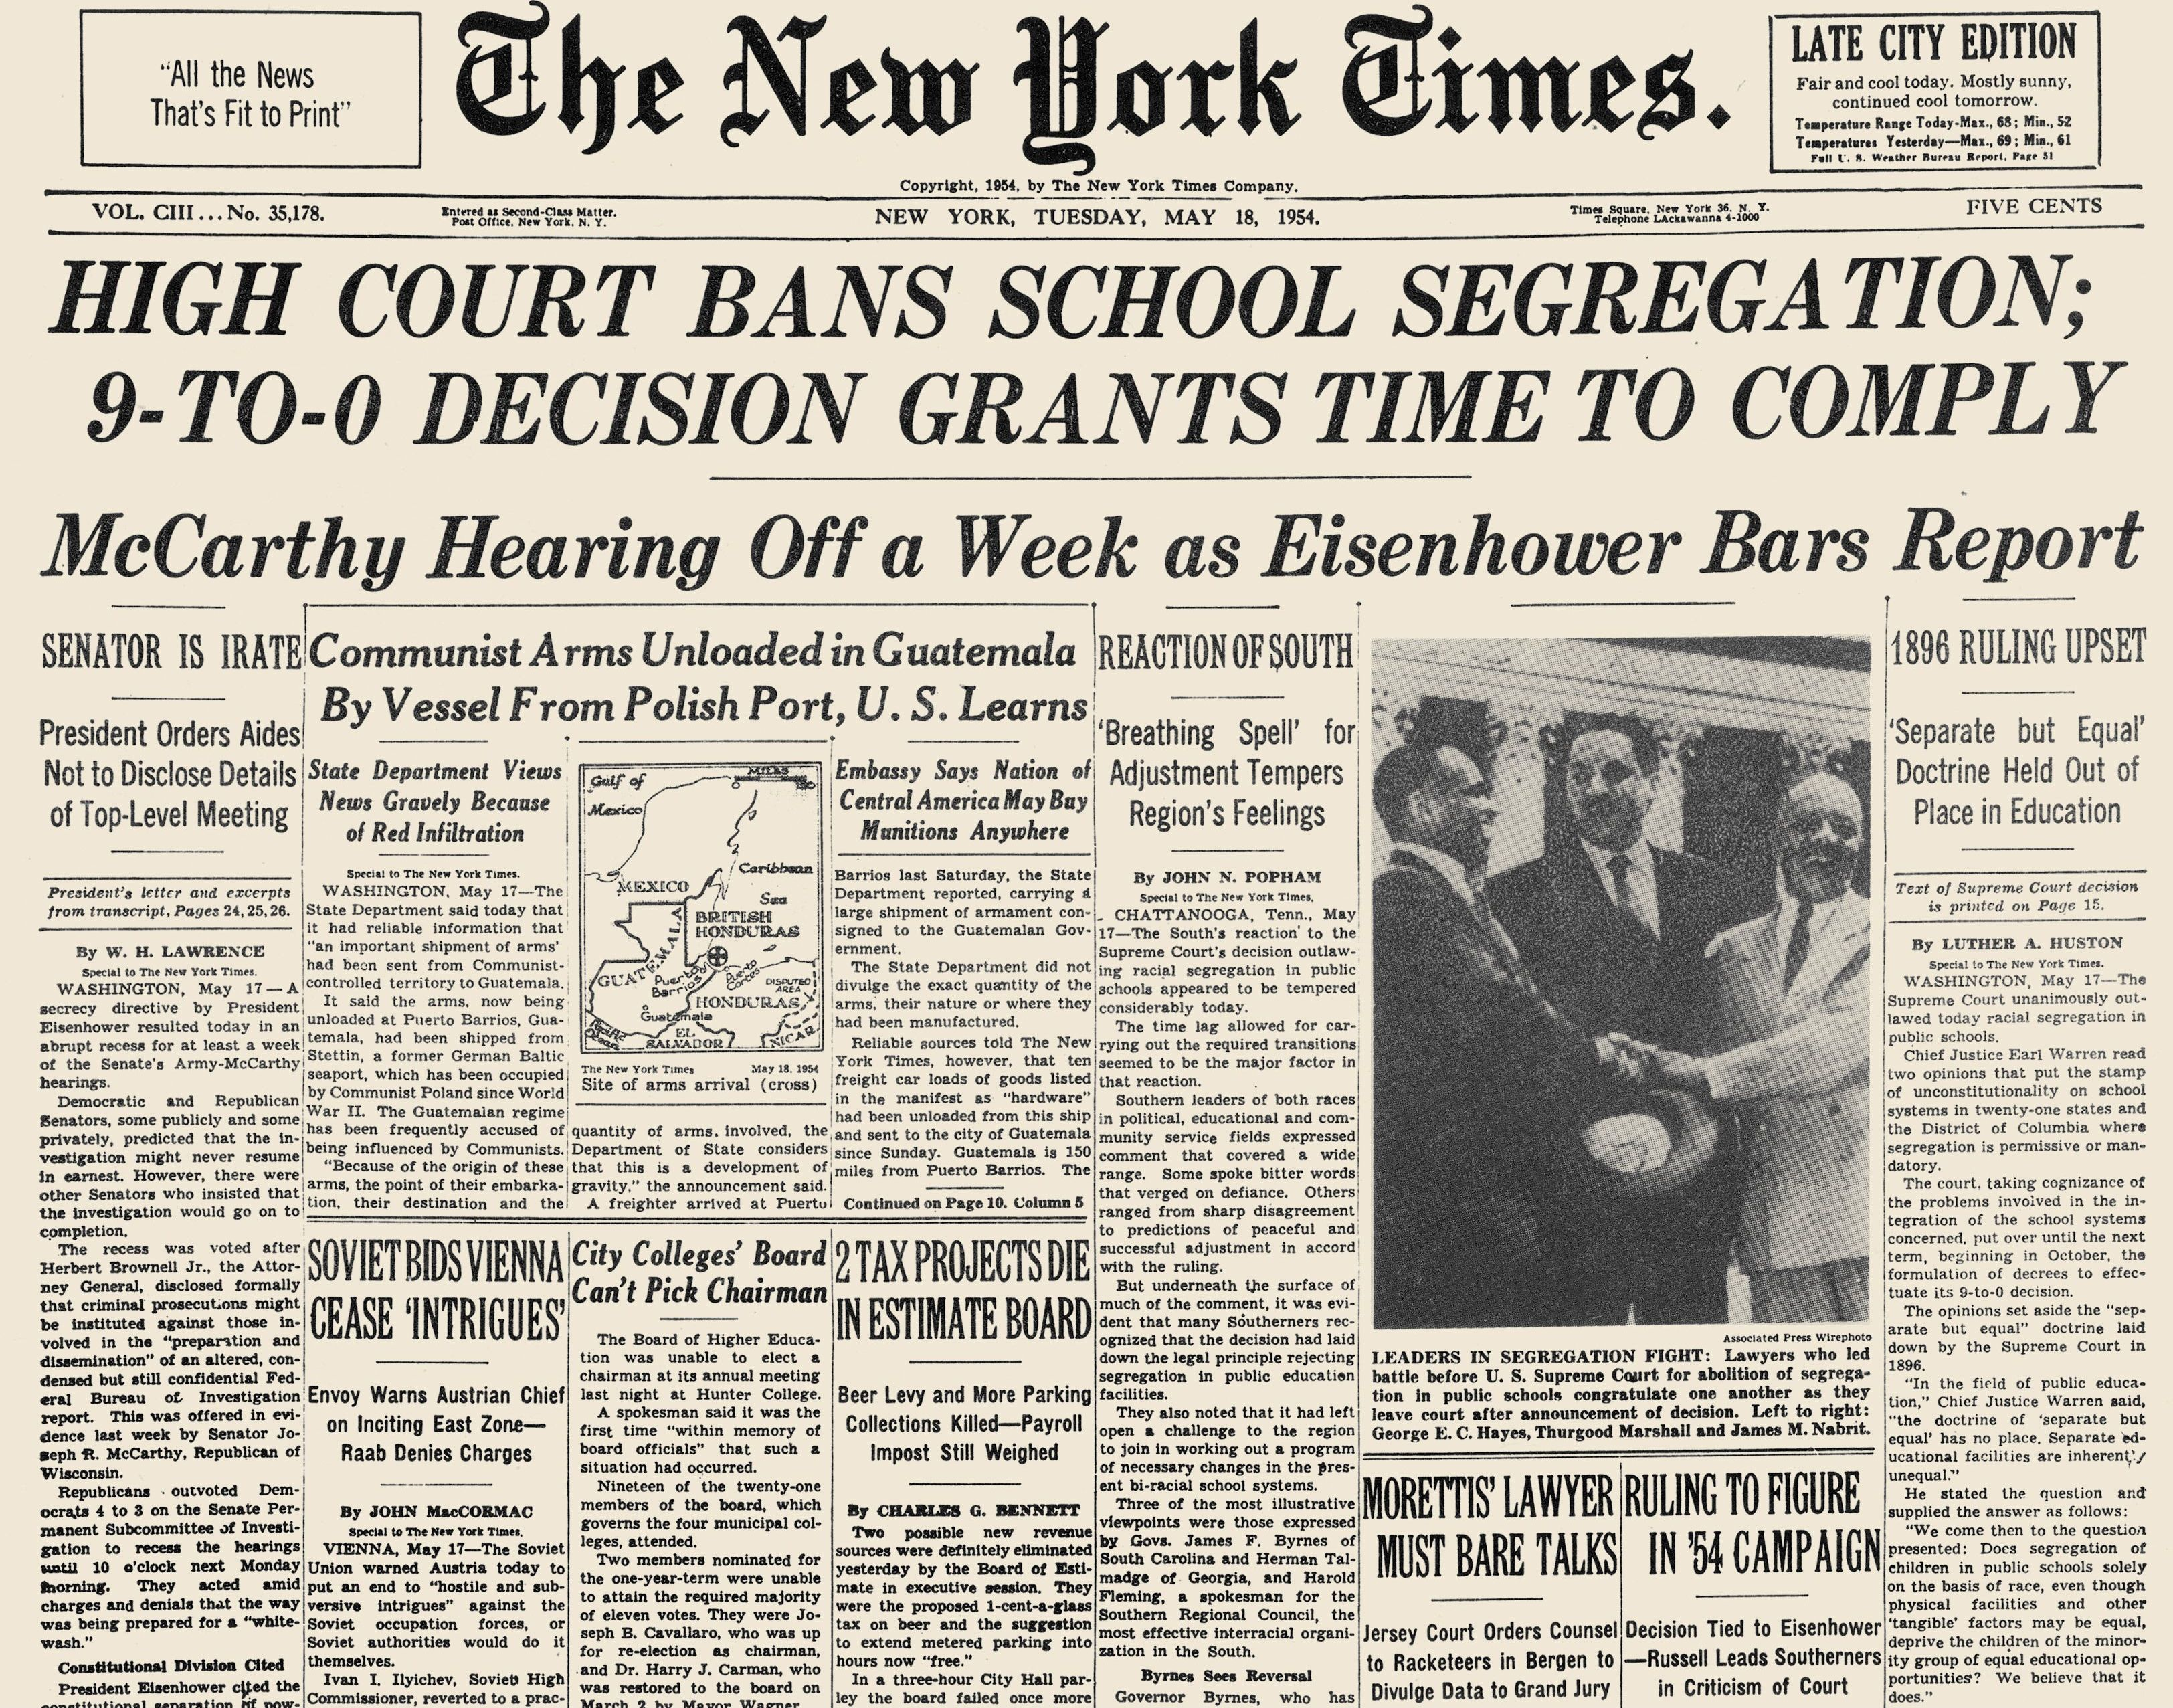 Career Aspirations Essay Front Page Of The New York Times  May  Announcing The Supreme Court Education For All Essay also Nyu Mba Essays Linda Brown Brown V Board Of Education Hero Dies  Flashbak Study Skills Essay